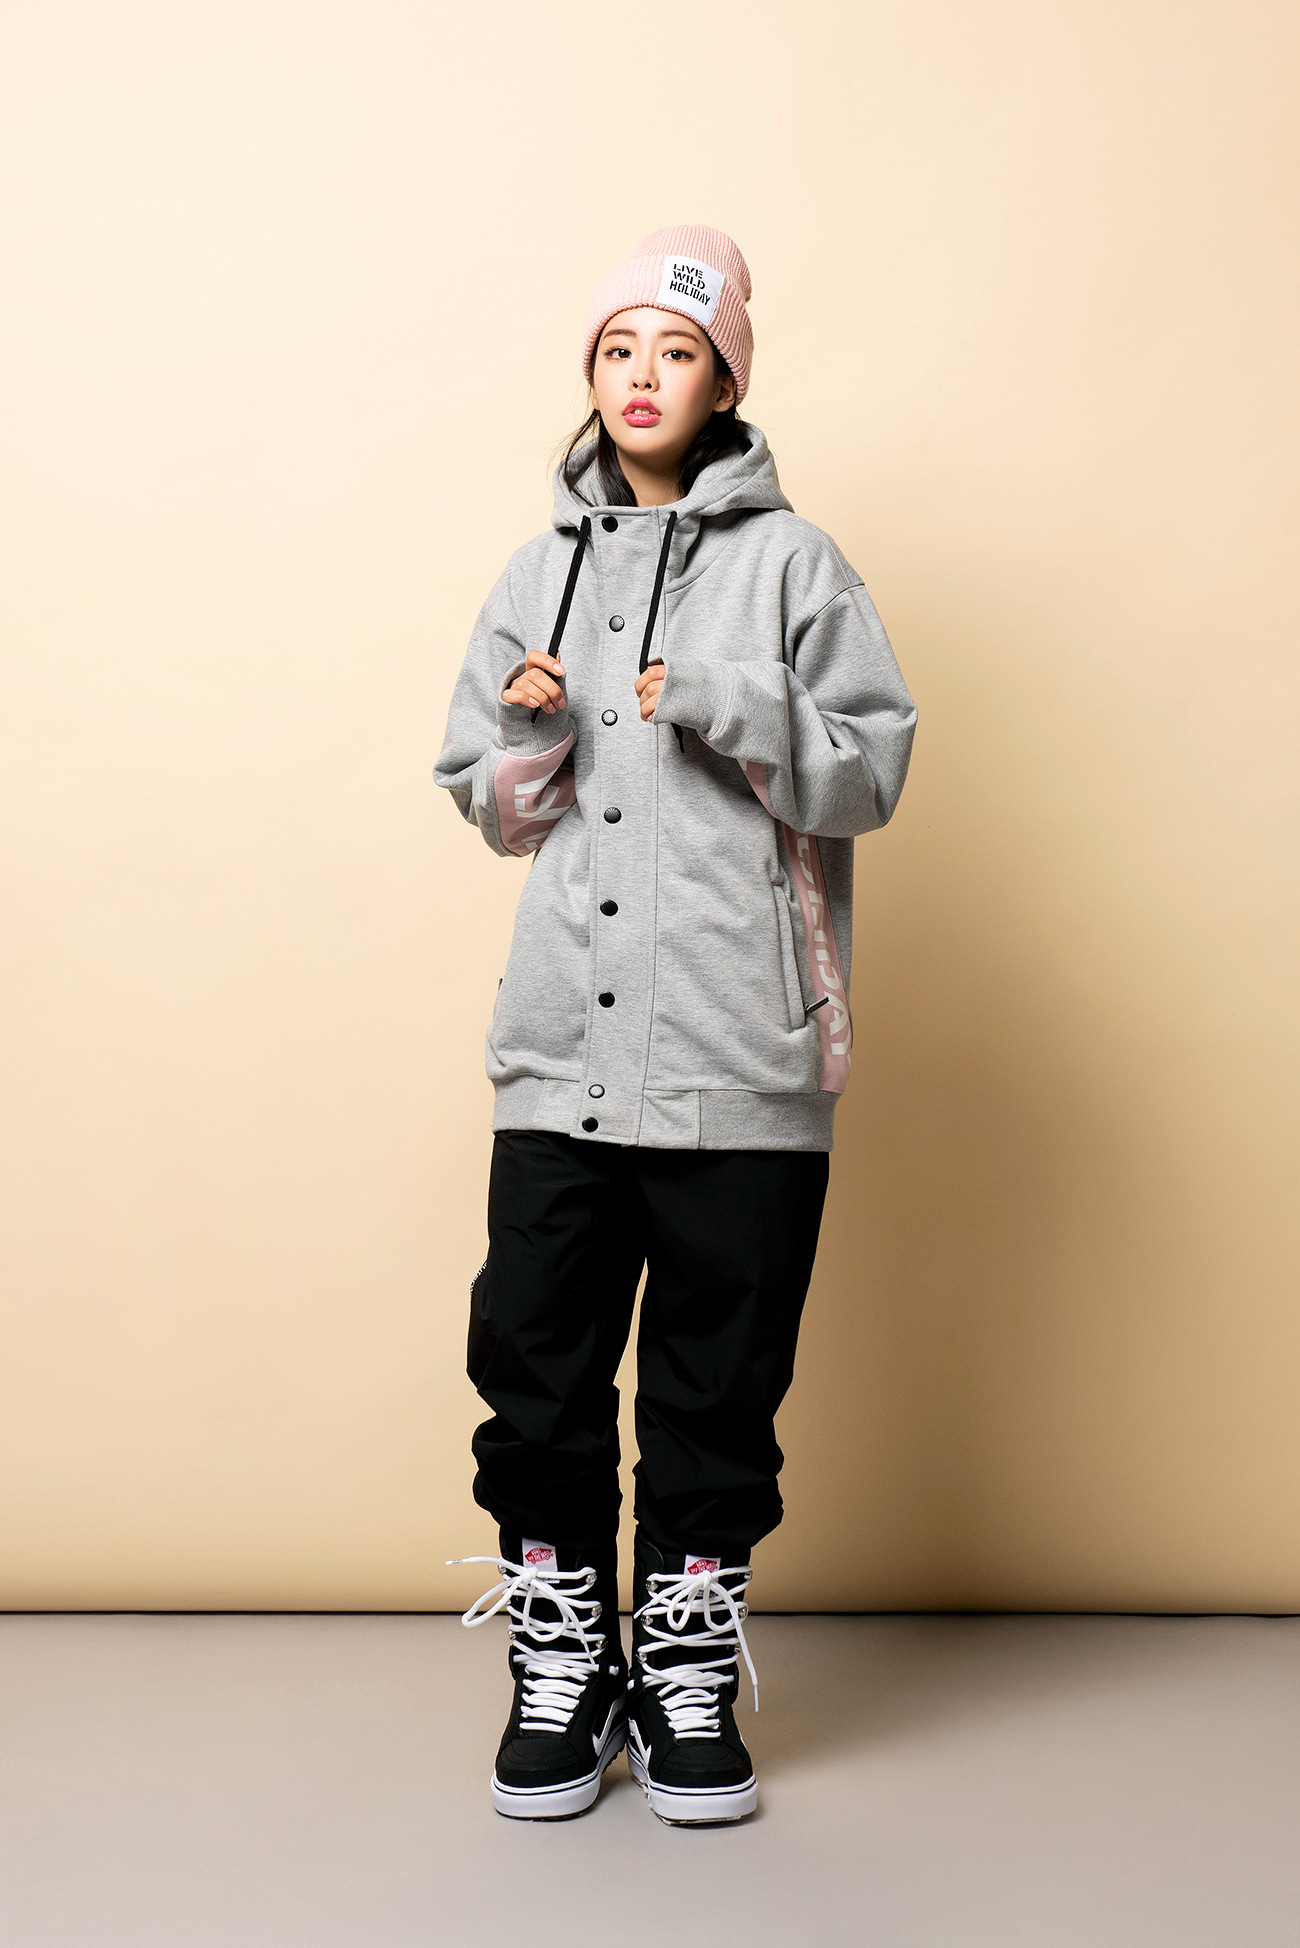 PLAYER waterproof hoodie jacket[방수집업자켓] - melangeHOLIDAY OUTERWEAR